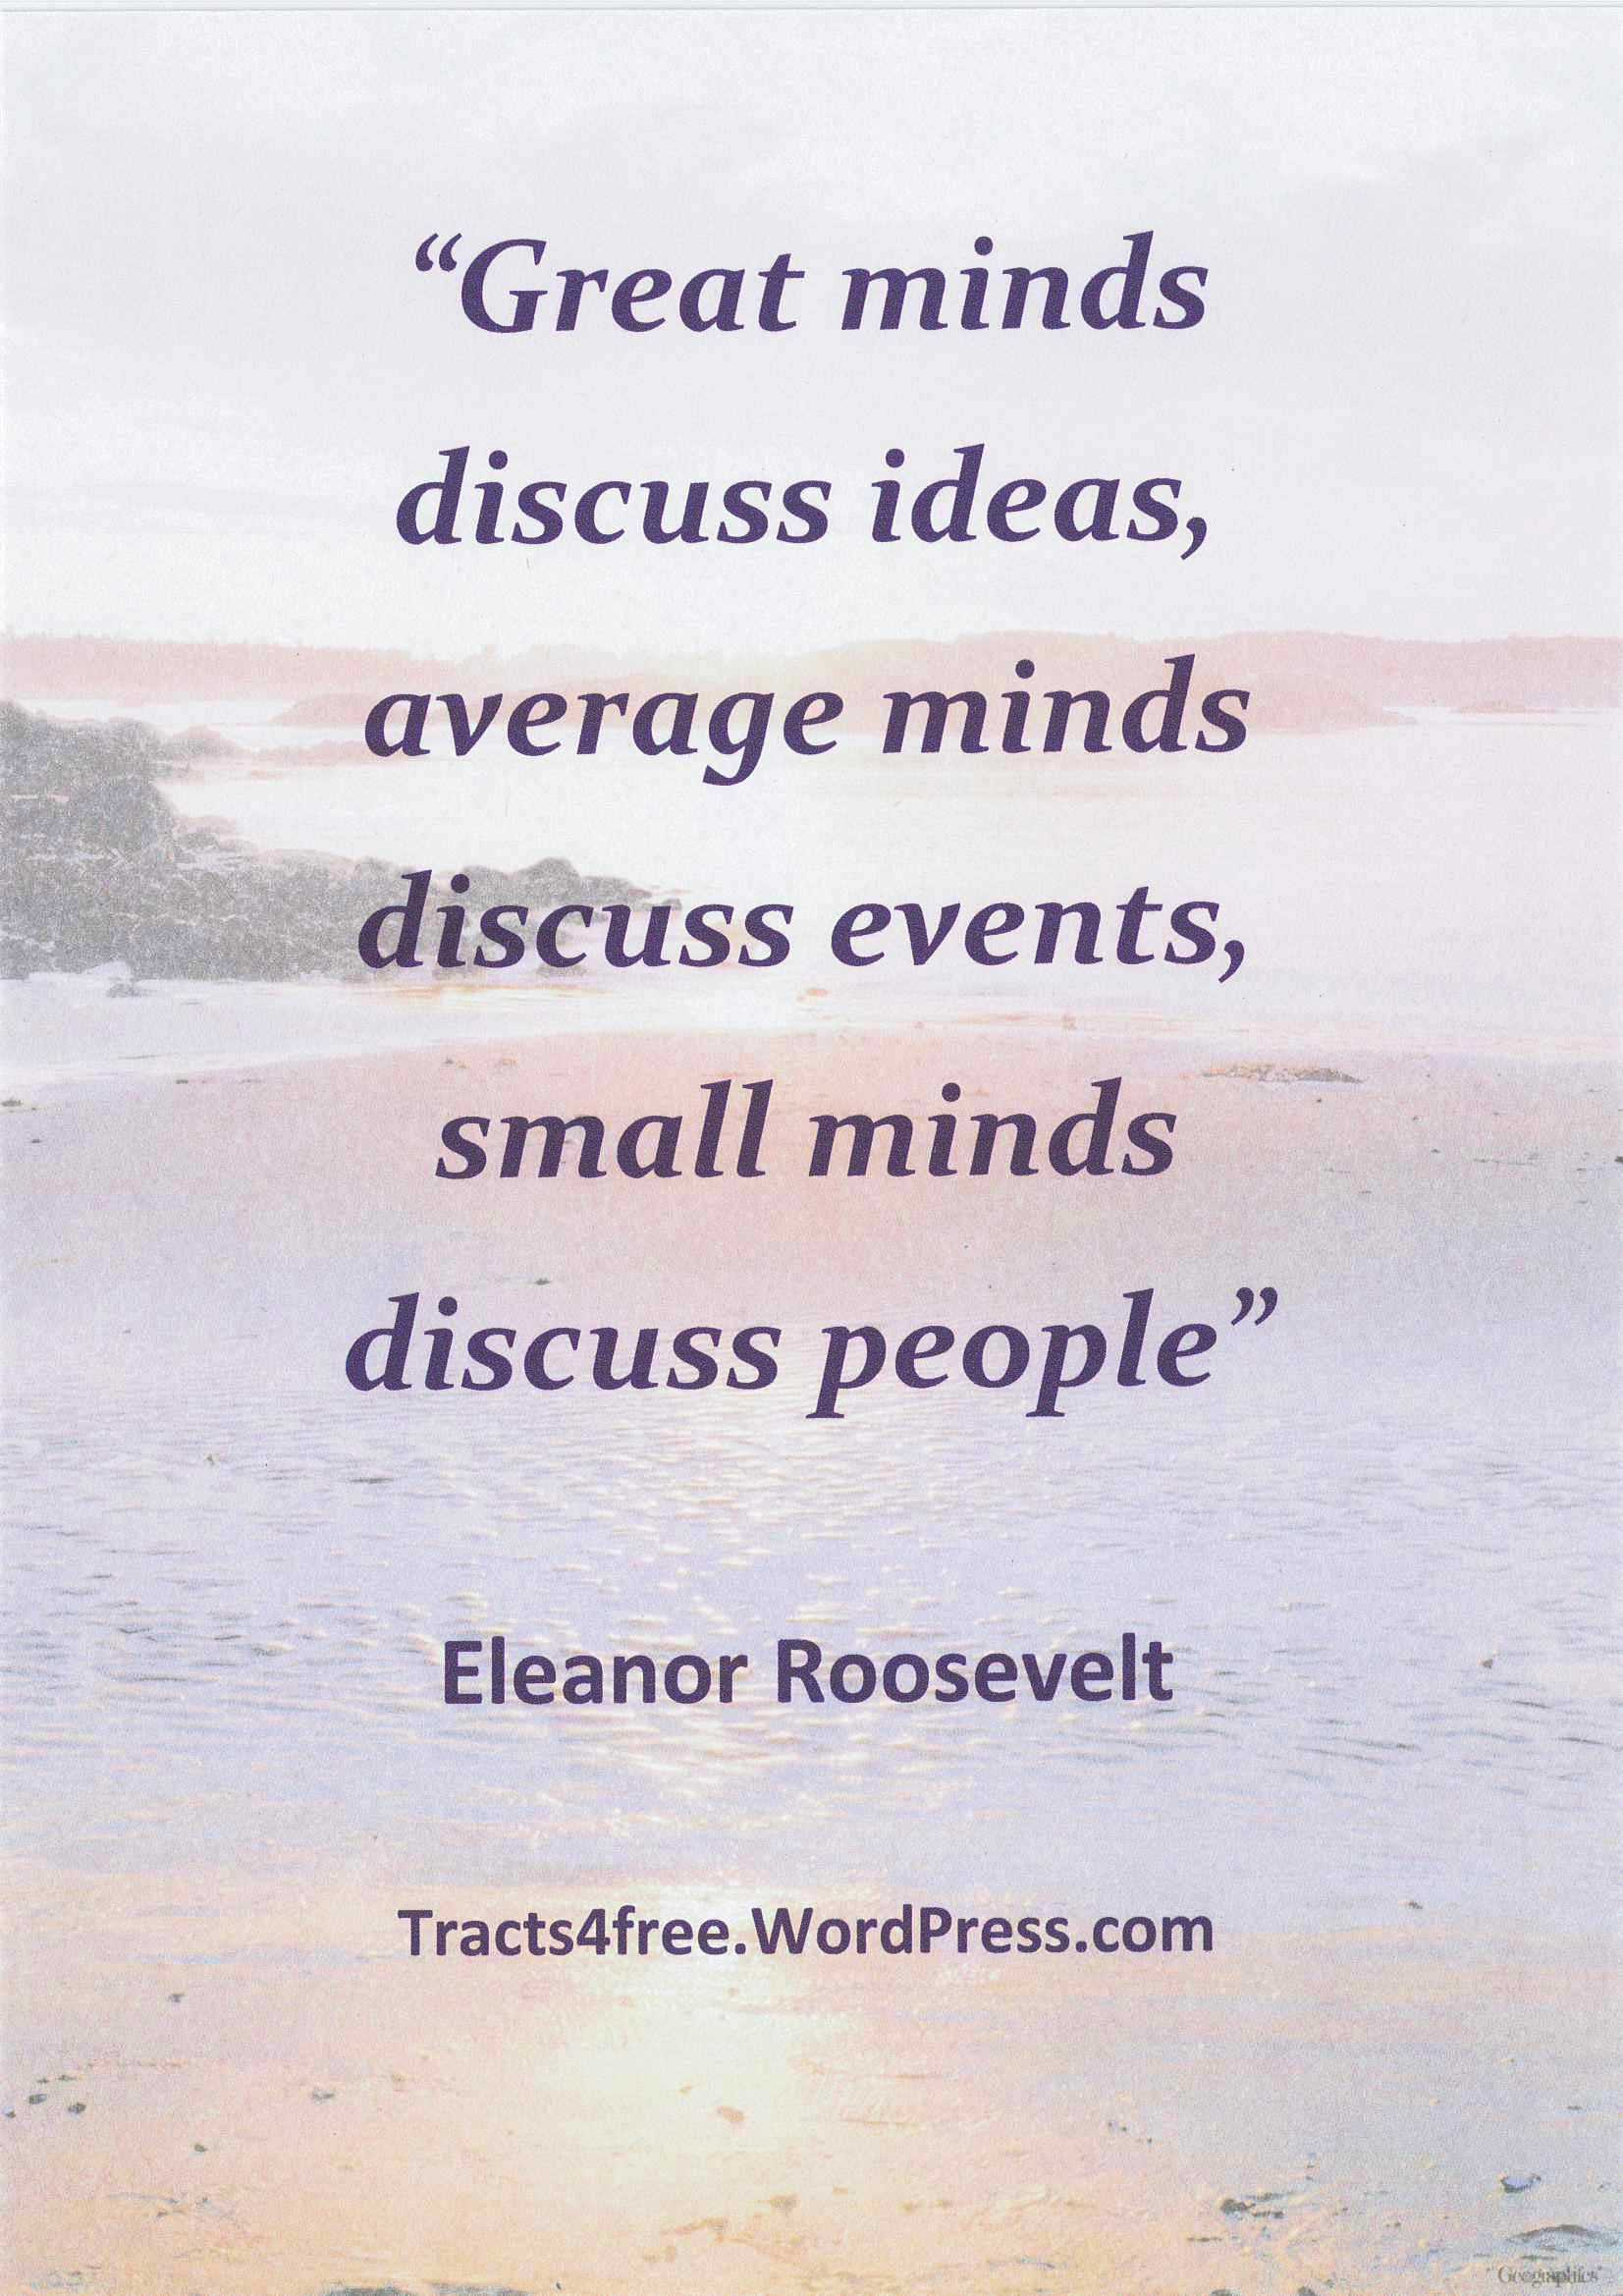 Eleanor Roosevelt Quote About Marines Quoteeleanor Roosevelt About Marines Eleanor Roosevelt